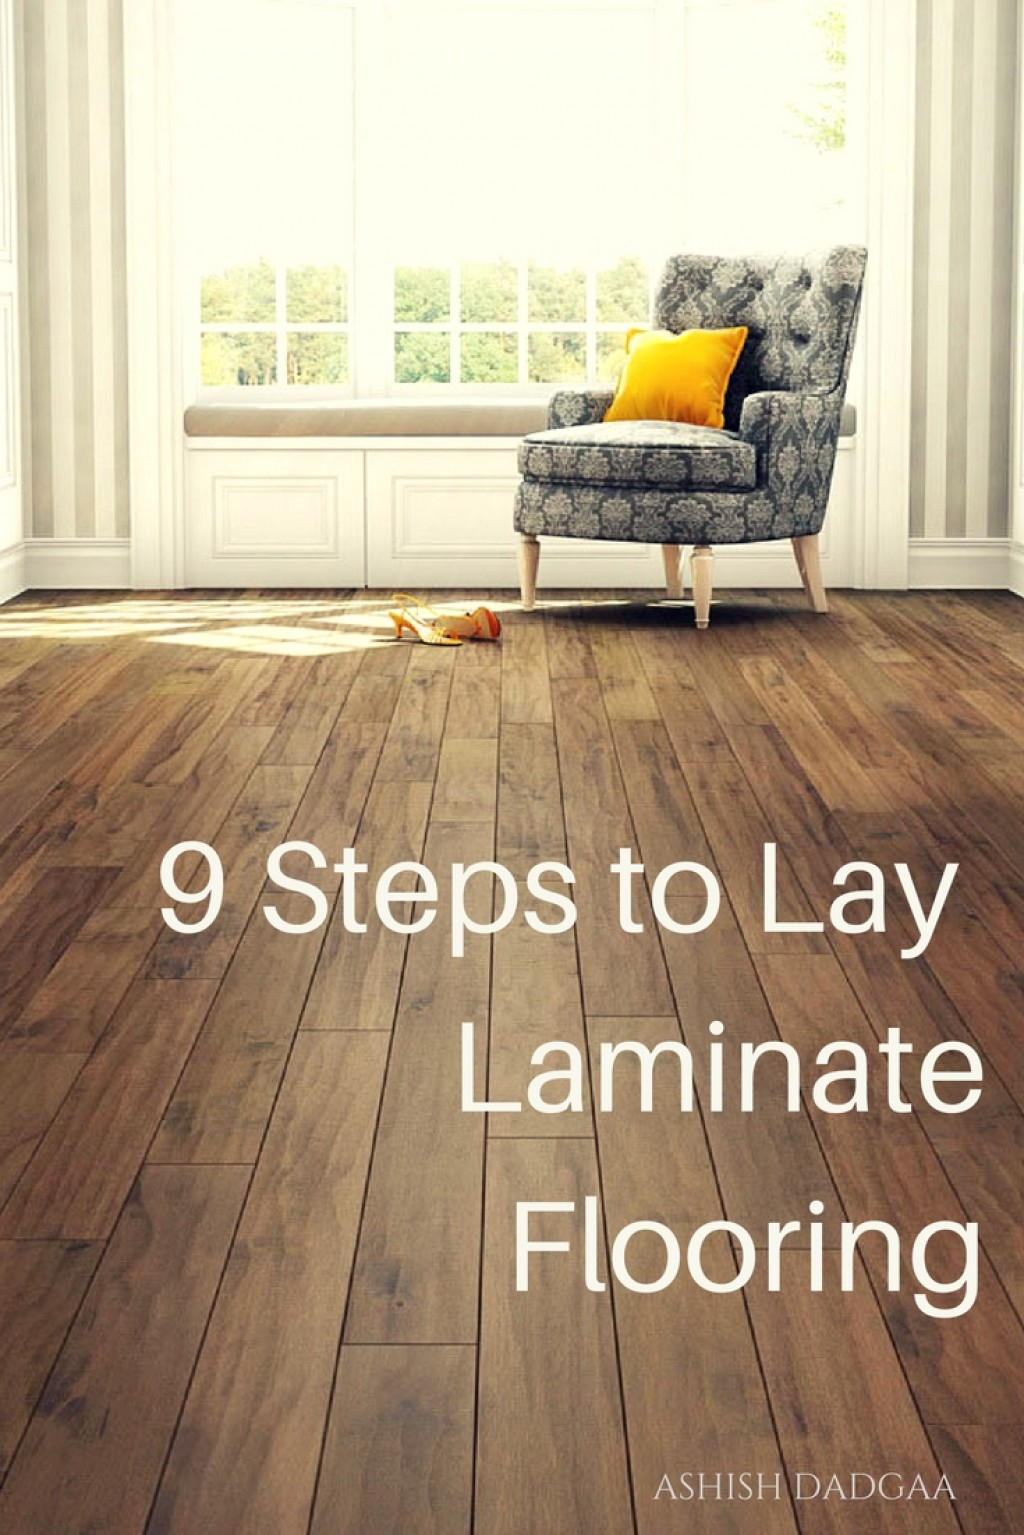 How to install laminate flooring on wood subfloor dengarden for Laying laminate flooring